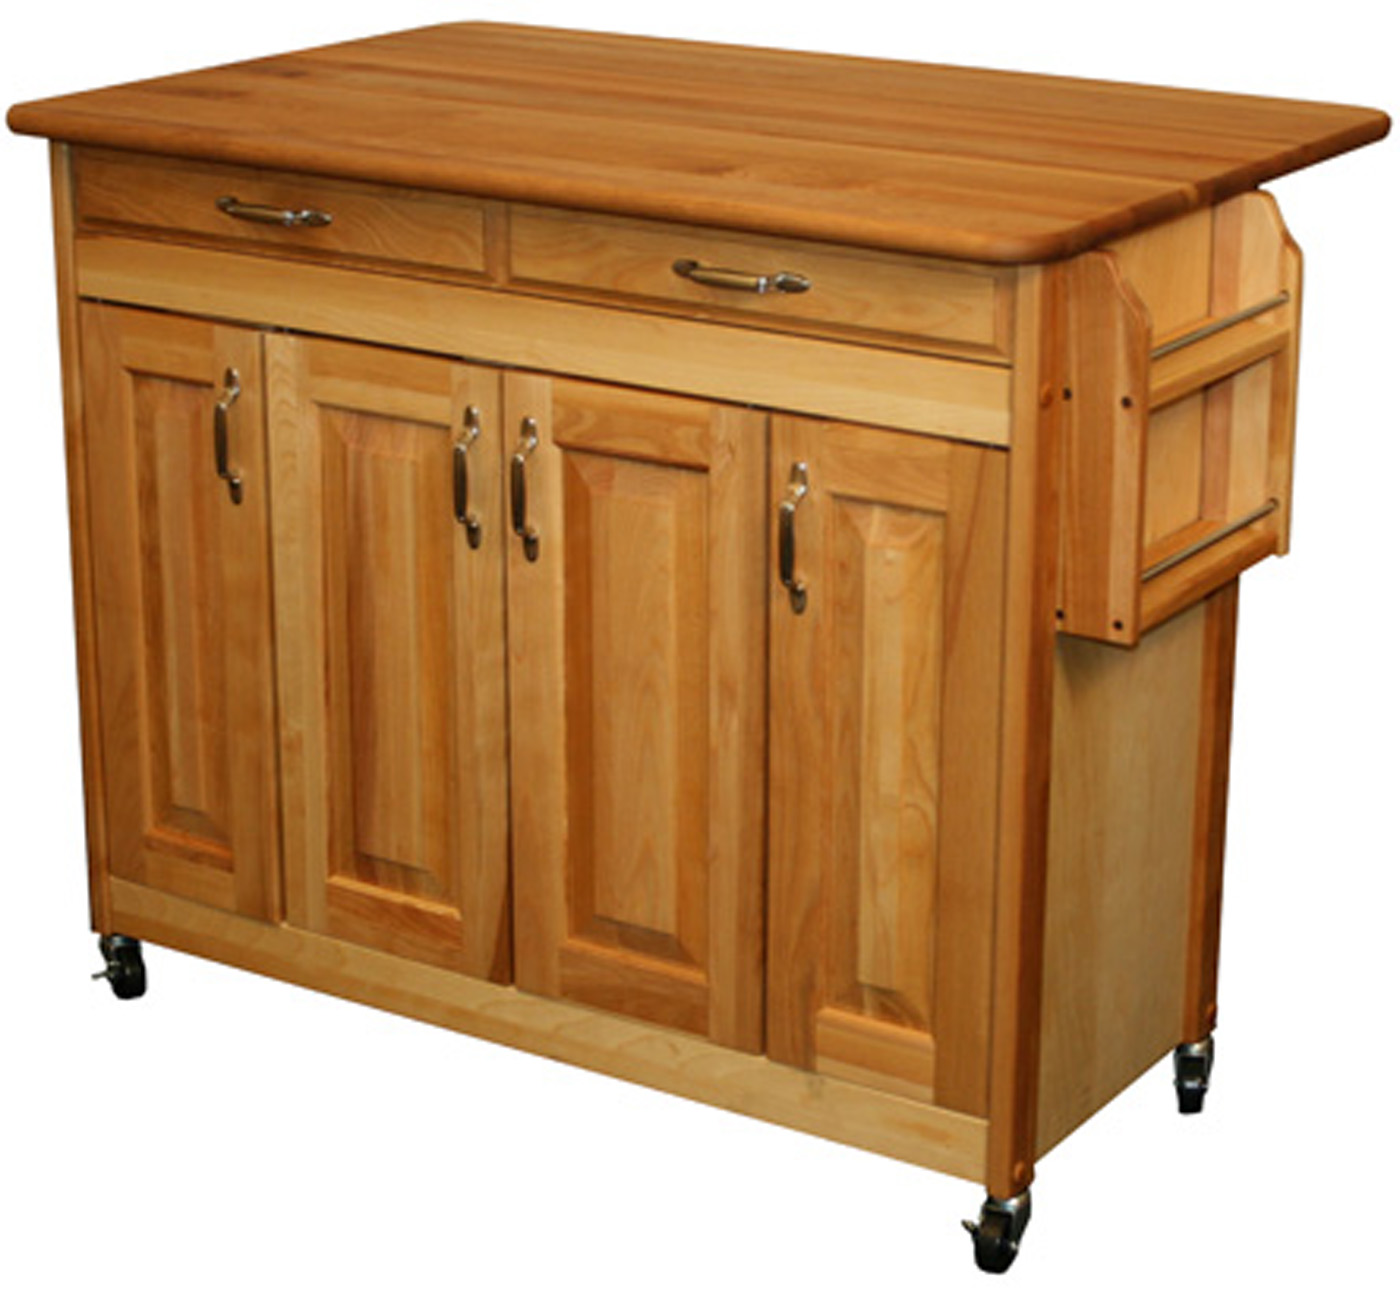 Butcher Block Kitchen Carts And Islands : Butcher Block Island in Kitchen Island Carts